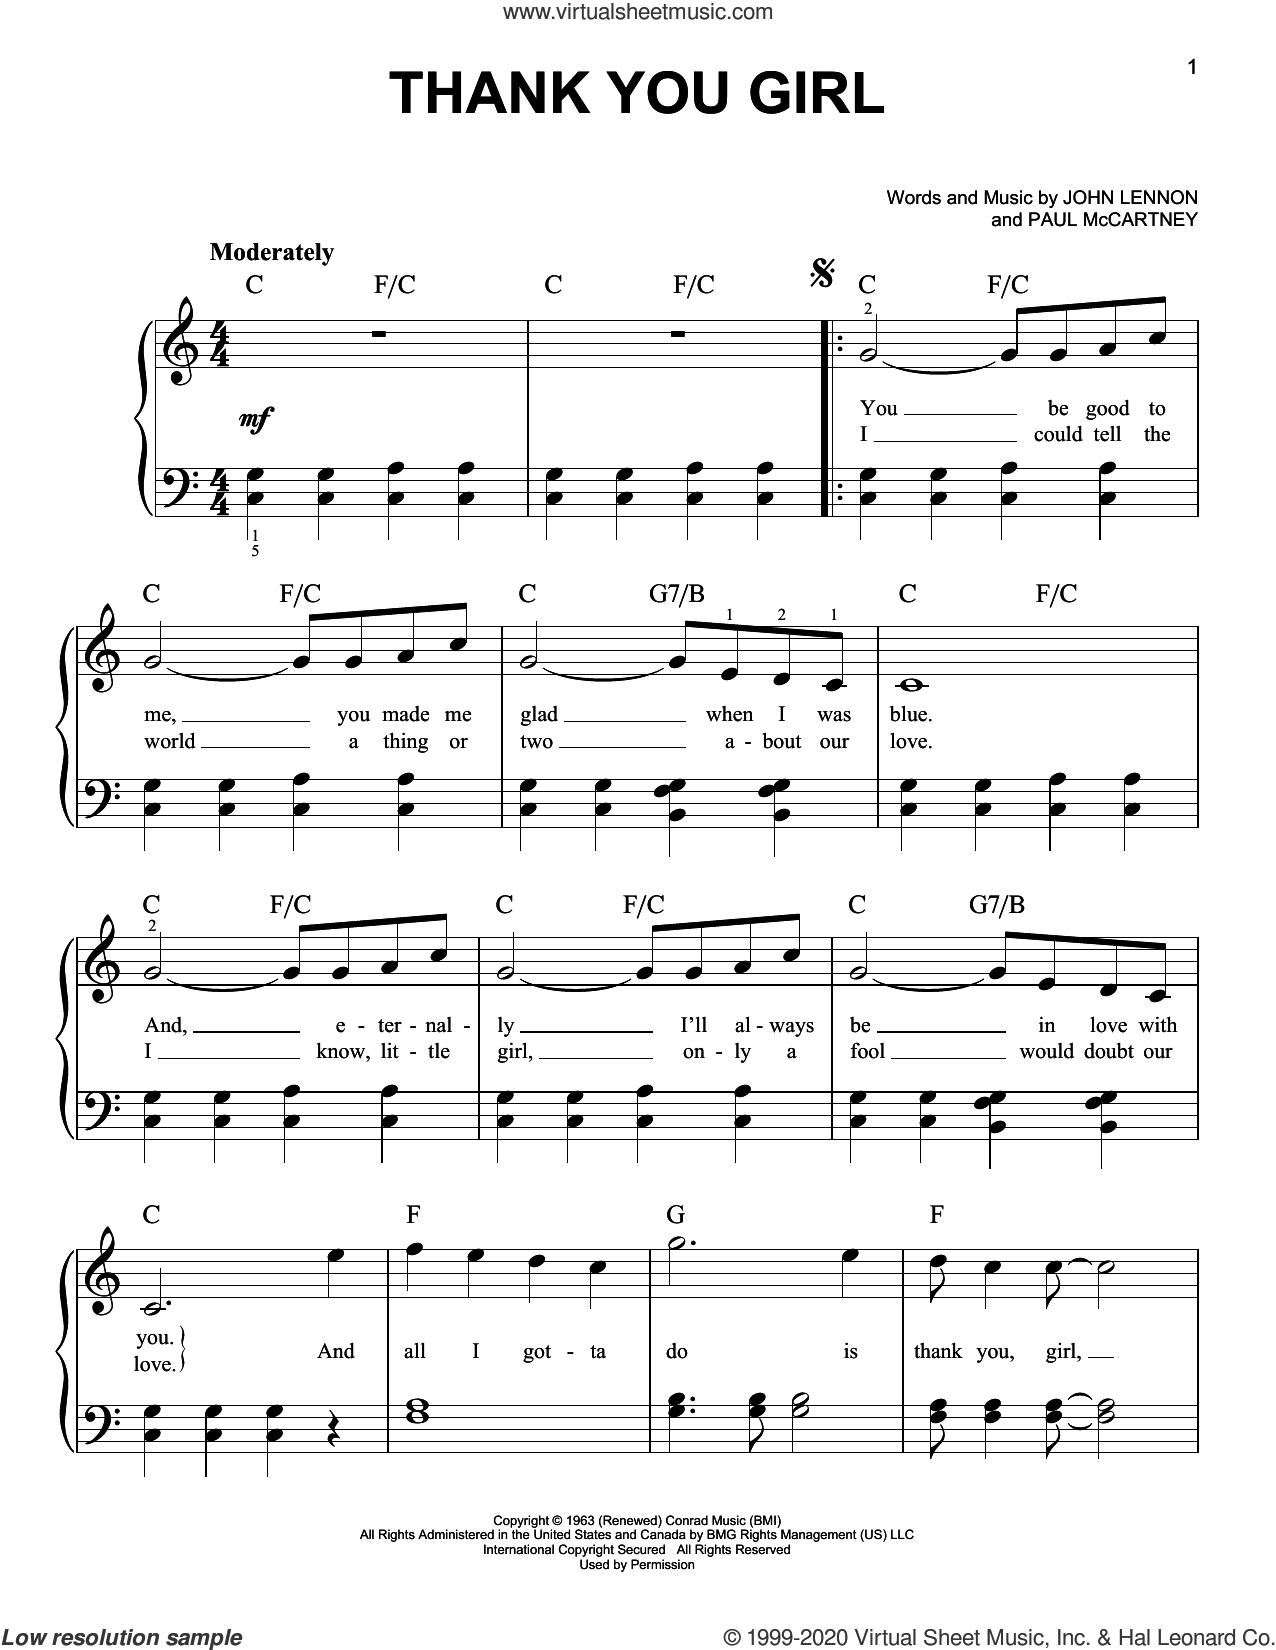 Thank You Girl sheet music for piano solo by The Beatles, John Lennon and Paul McCartney, easy skill level